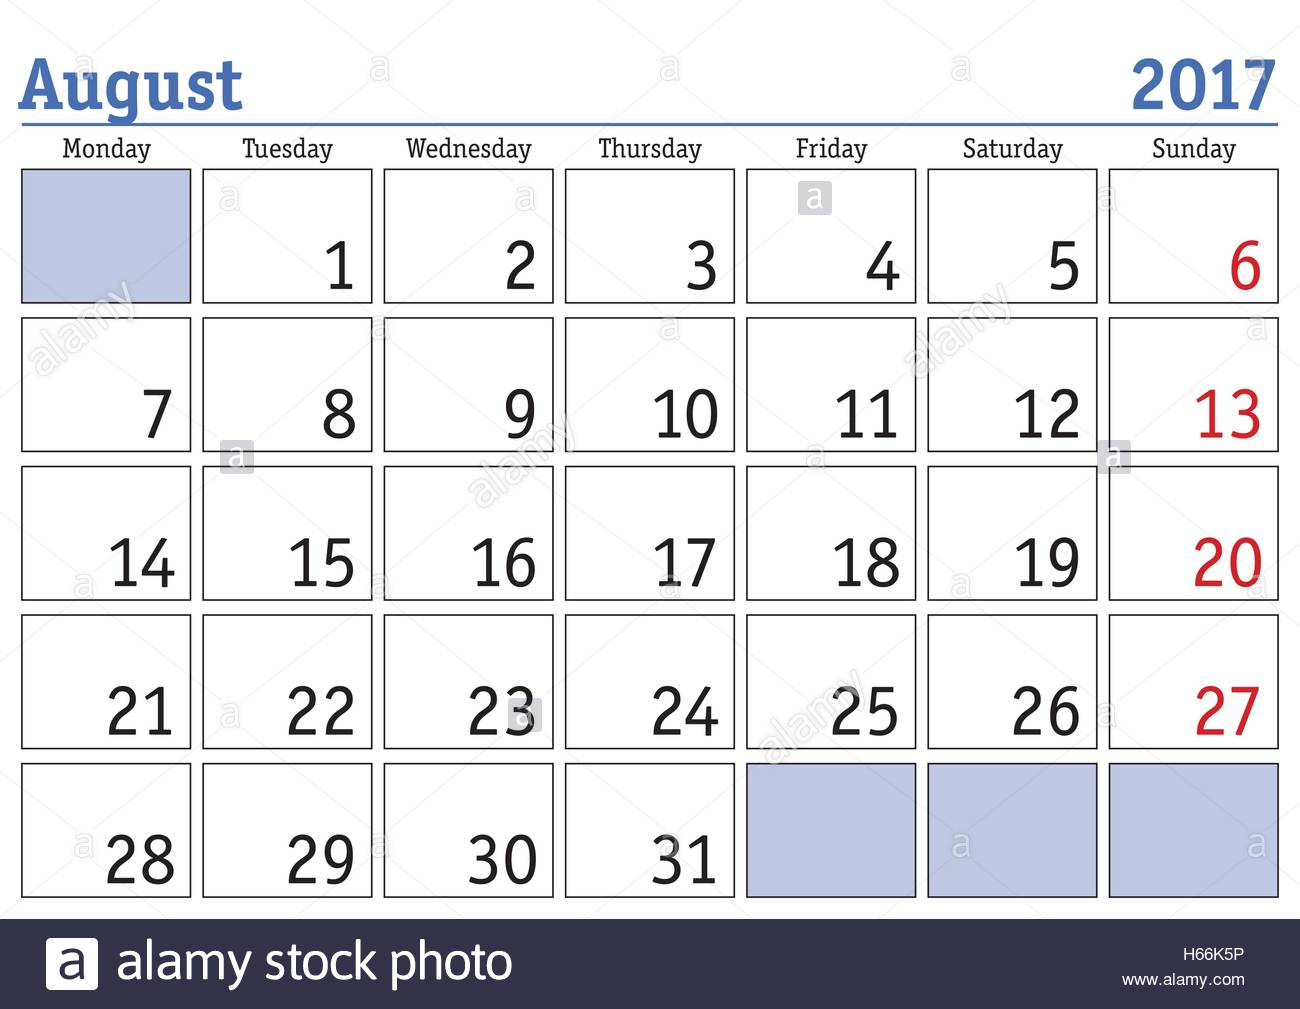 Simple Digital Calendar For August 2017. Vector Printable